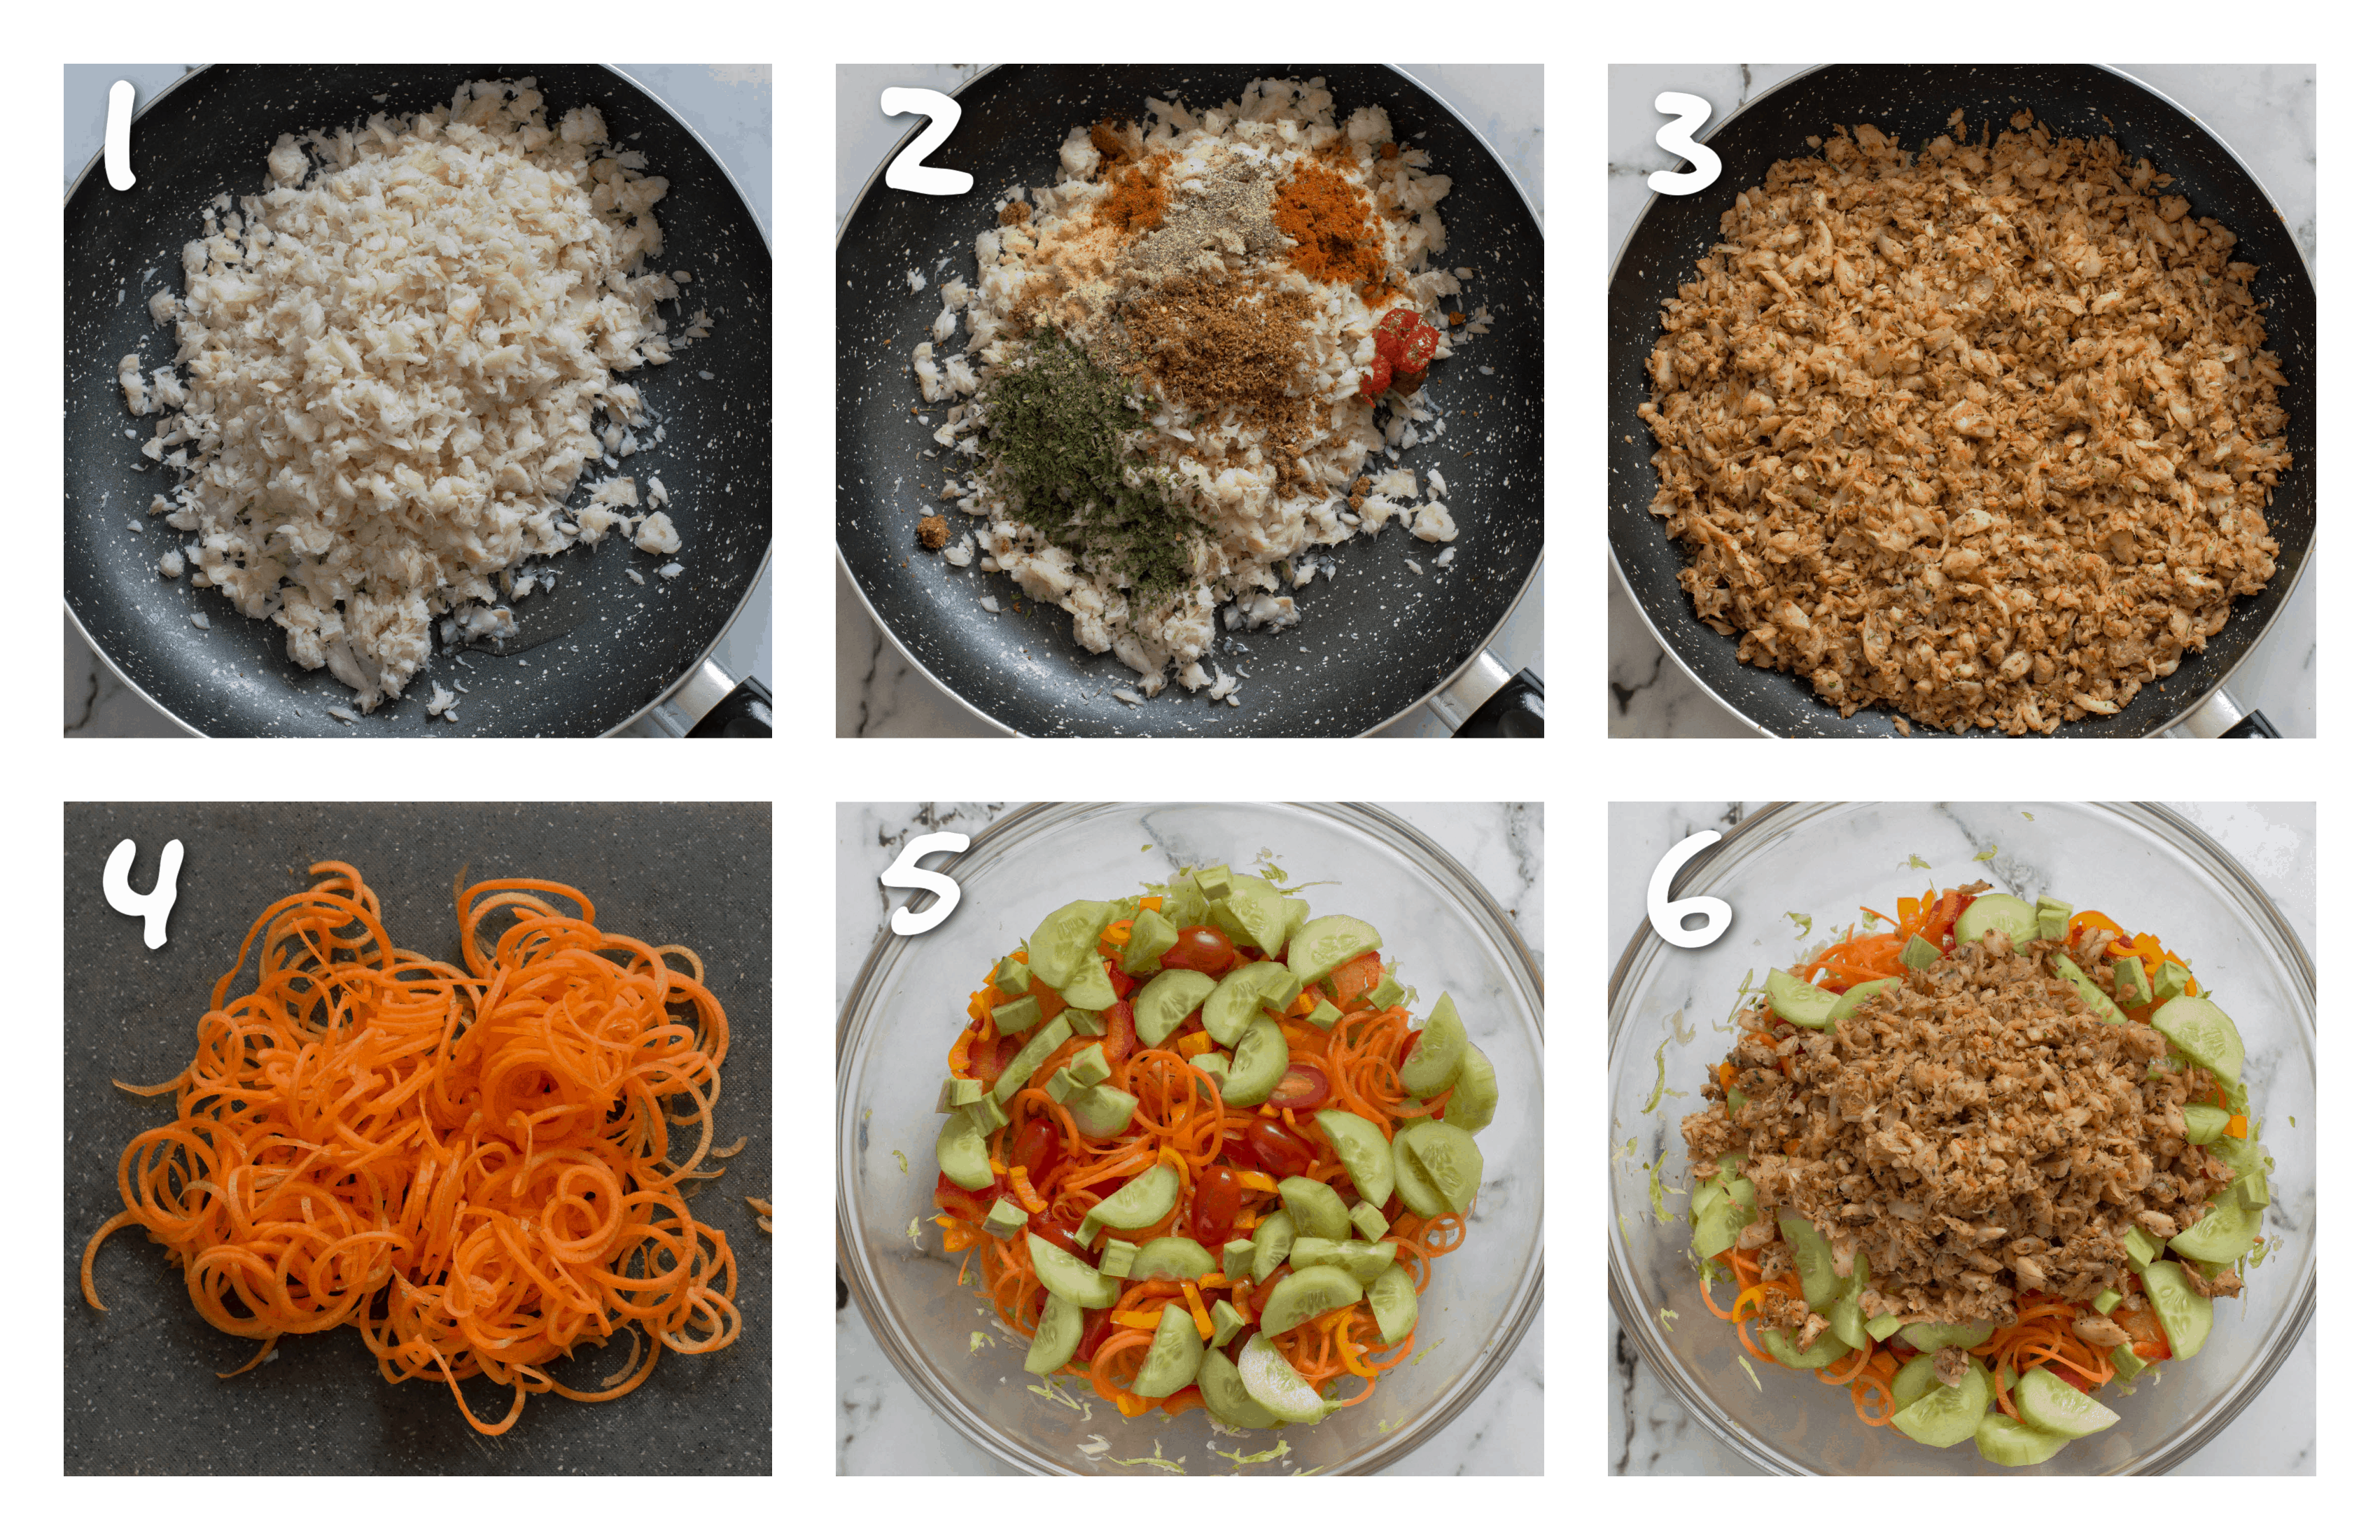 steps1-6 cooking the saltfish and preparing the salad